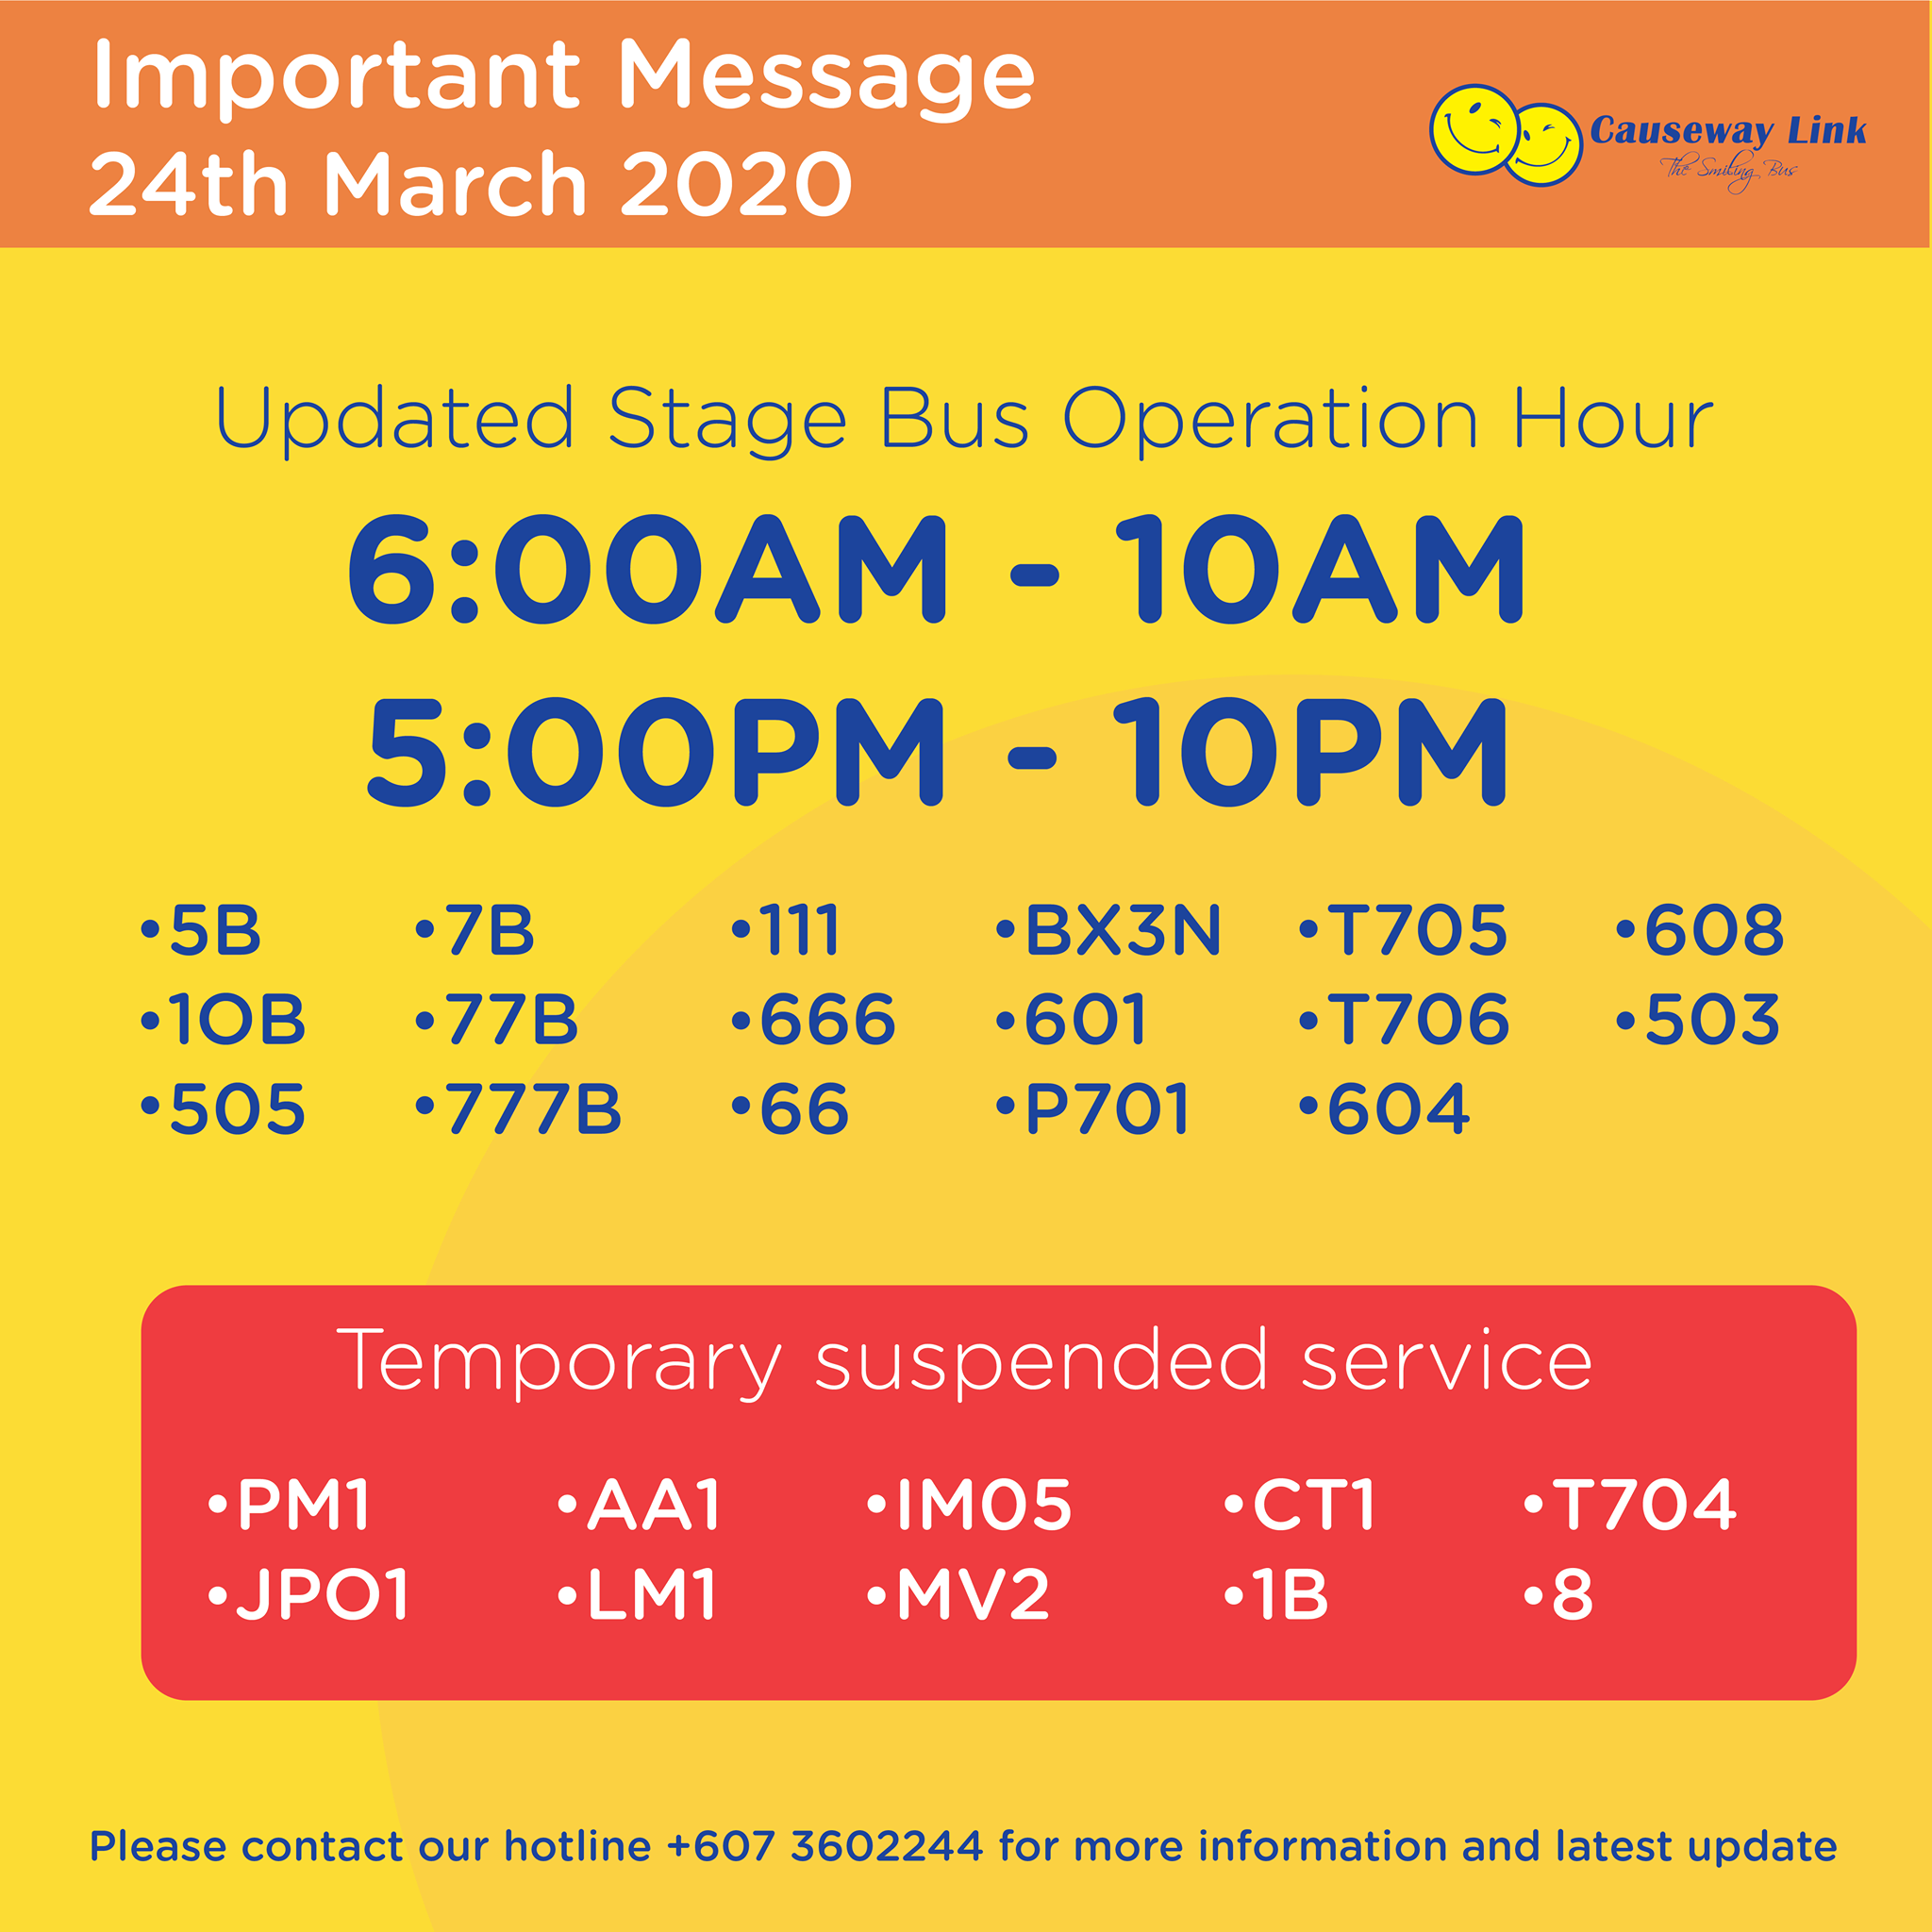 Official Causeway Link announcement on the change in operating hours and suspension of bus services.